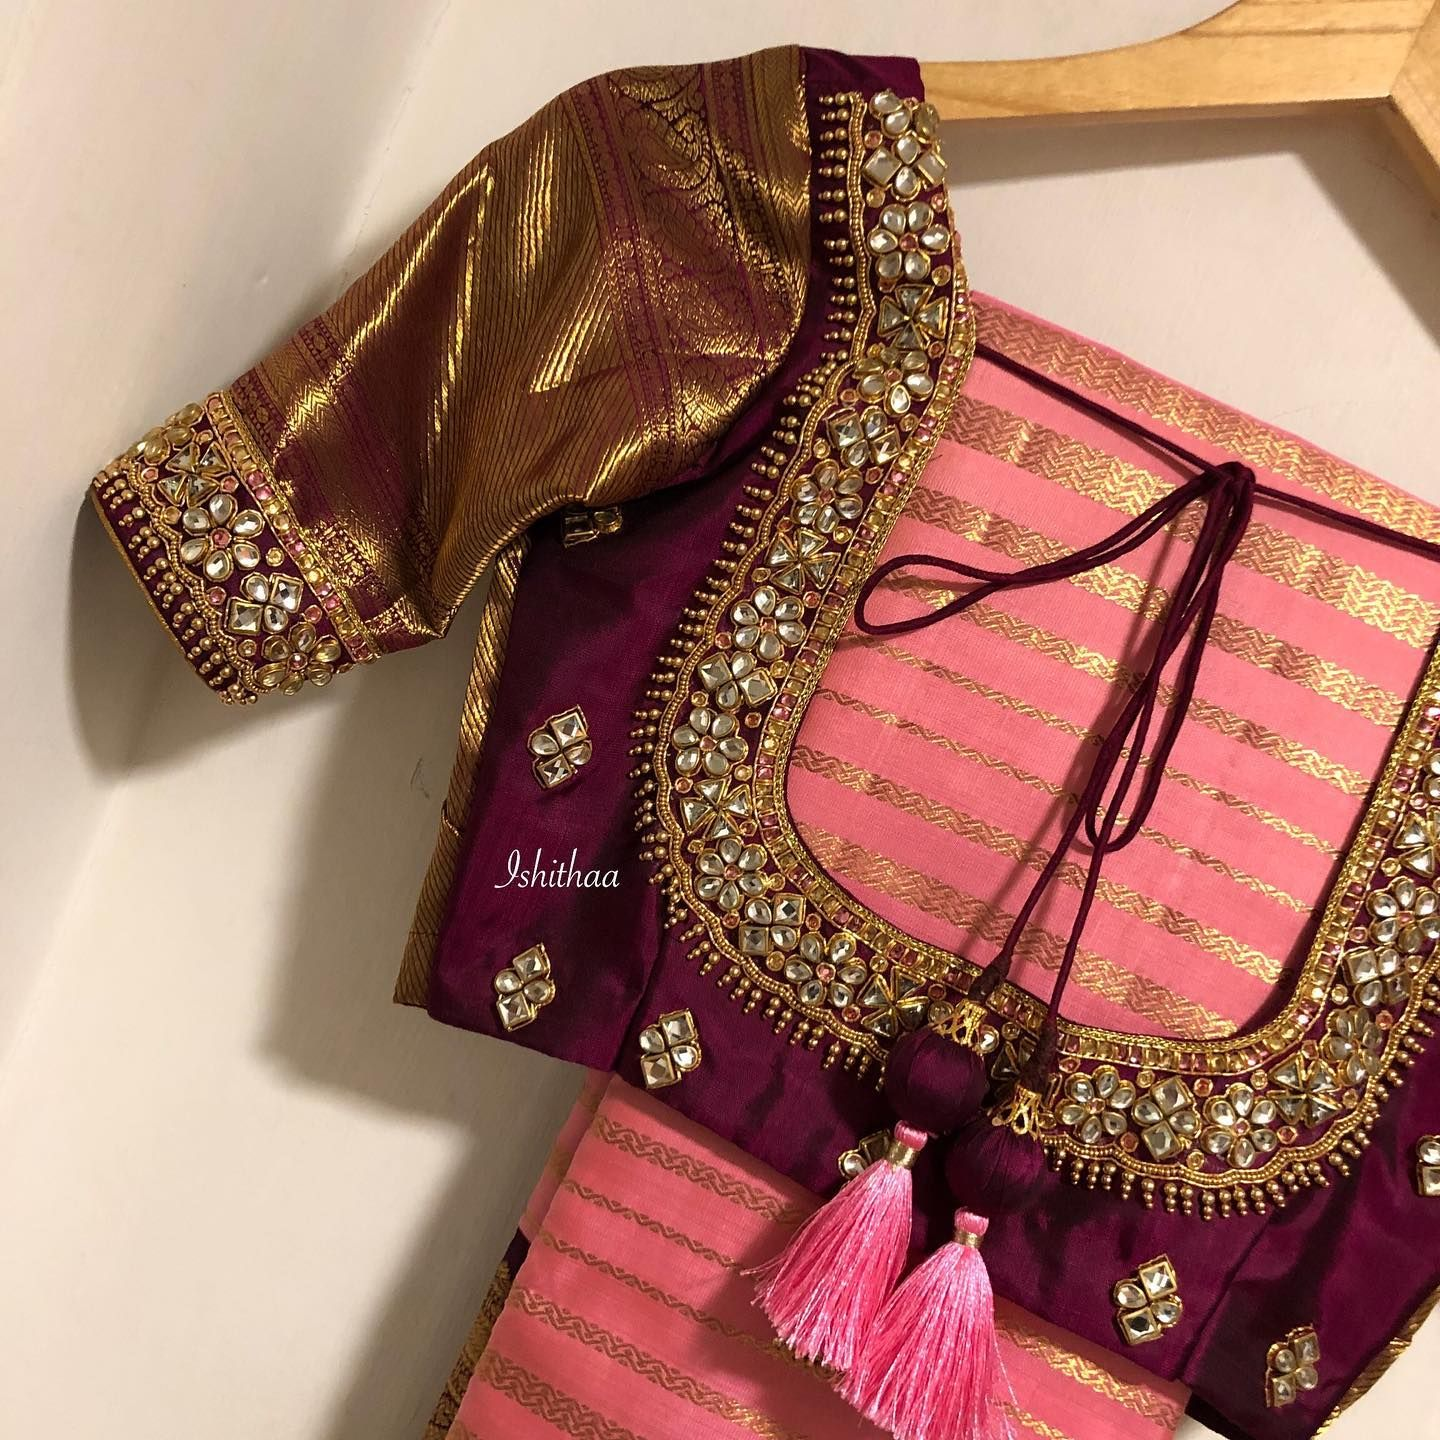 This Beautiful Shade Of Pink Saree And Burgundy Blouse Stunning Wine Color B Embroidered Blouse Designs Fancy Blouse Designs Designer Saree Blouse Patterns